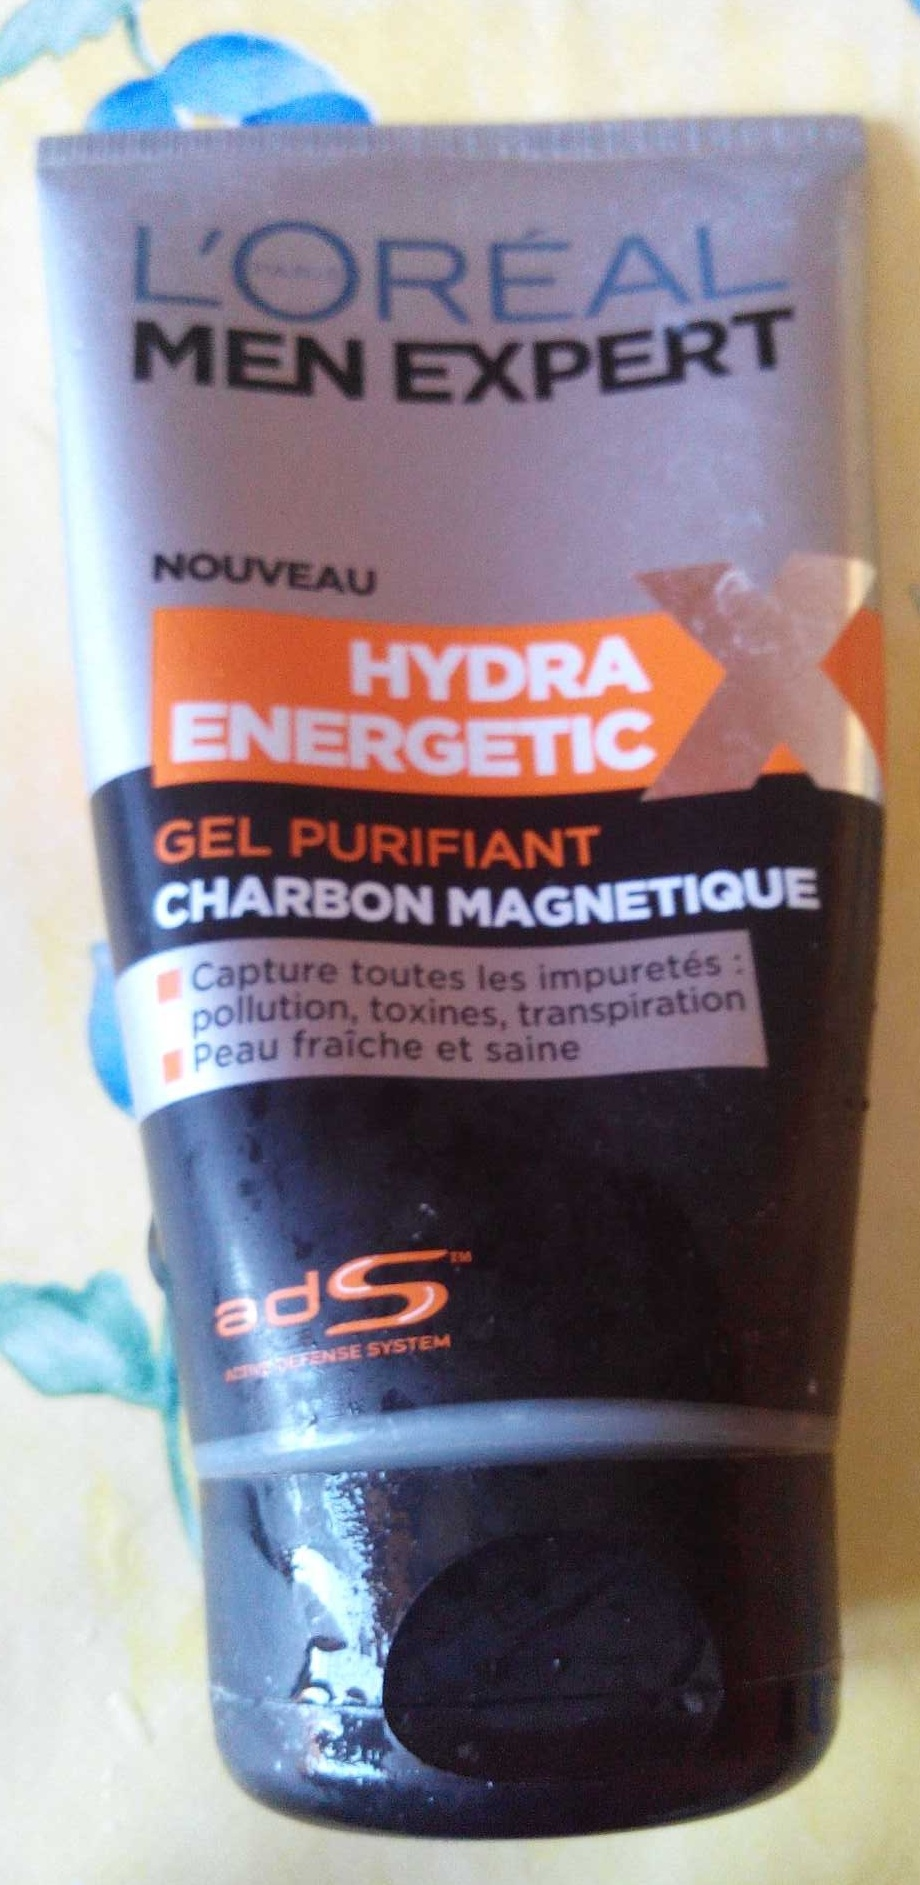 Hydra Energetic Gel purifiant charbon magnétique - Product - fr